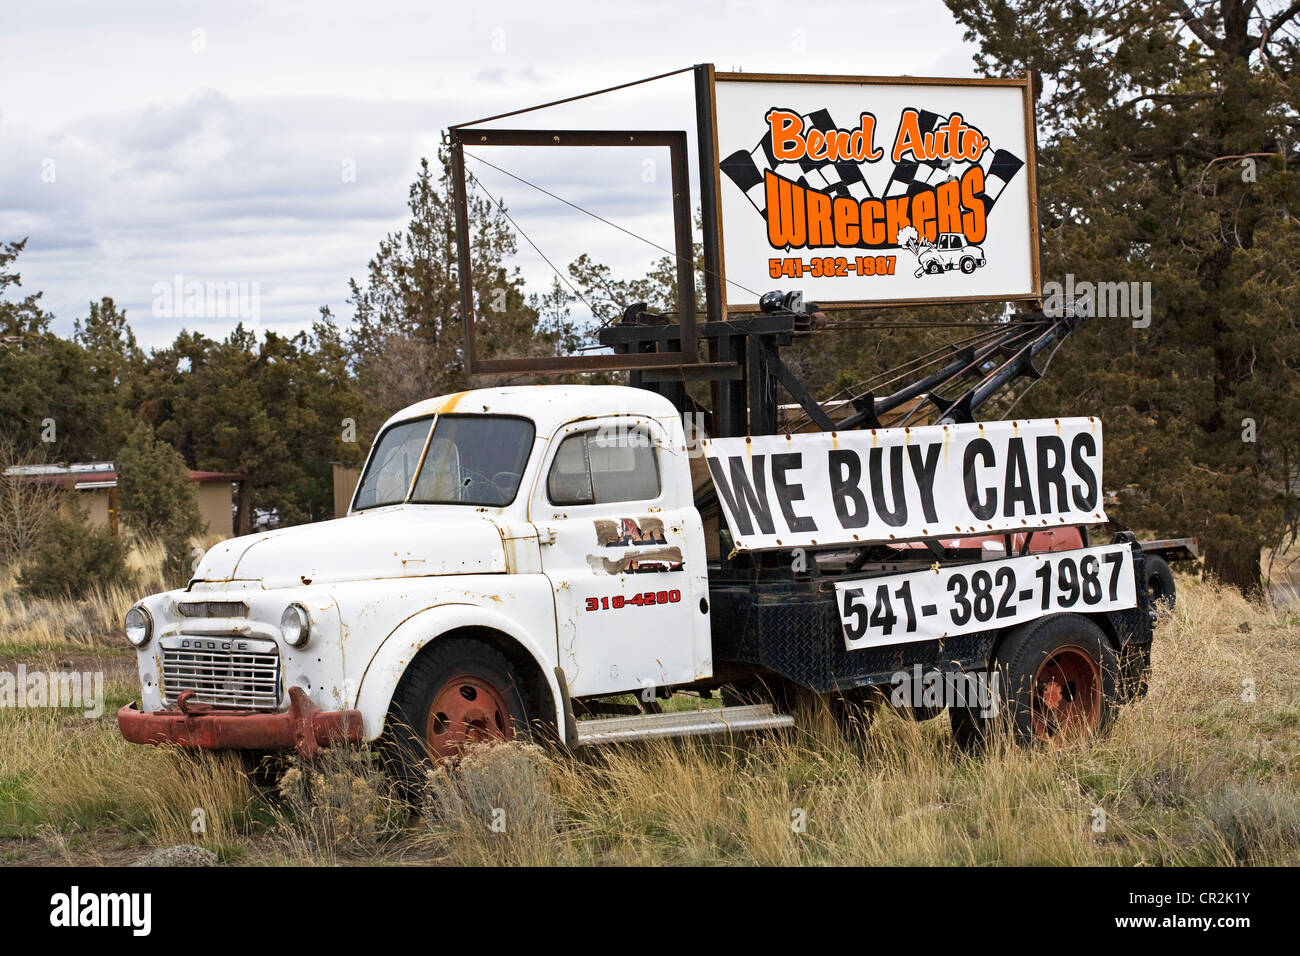 An ancient Dodge truck is used to advertise an auto junk yard in ...